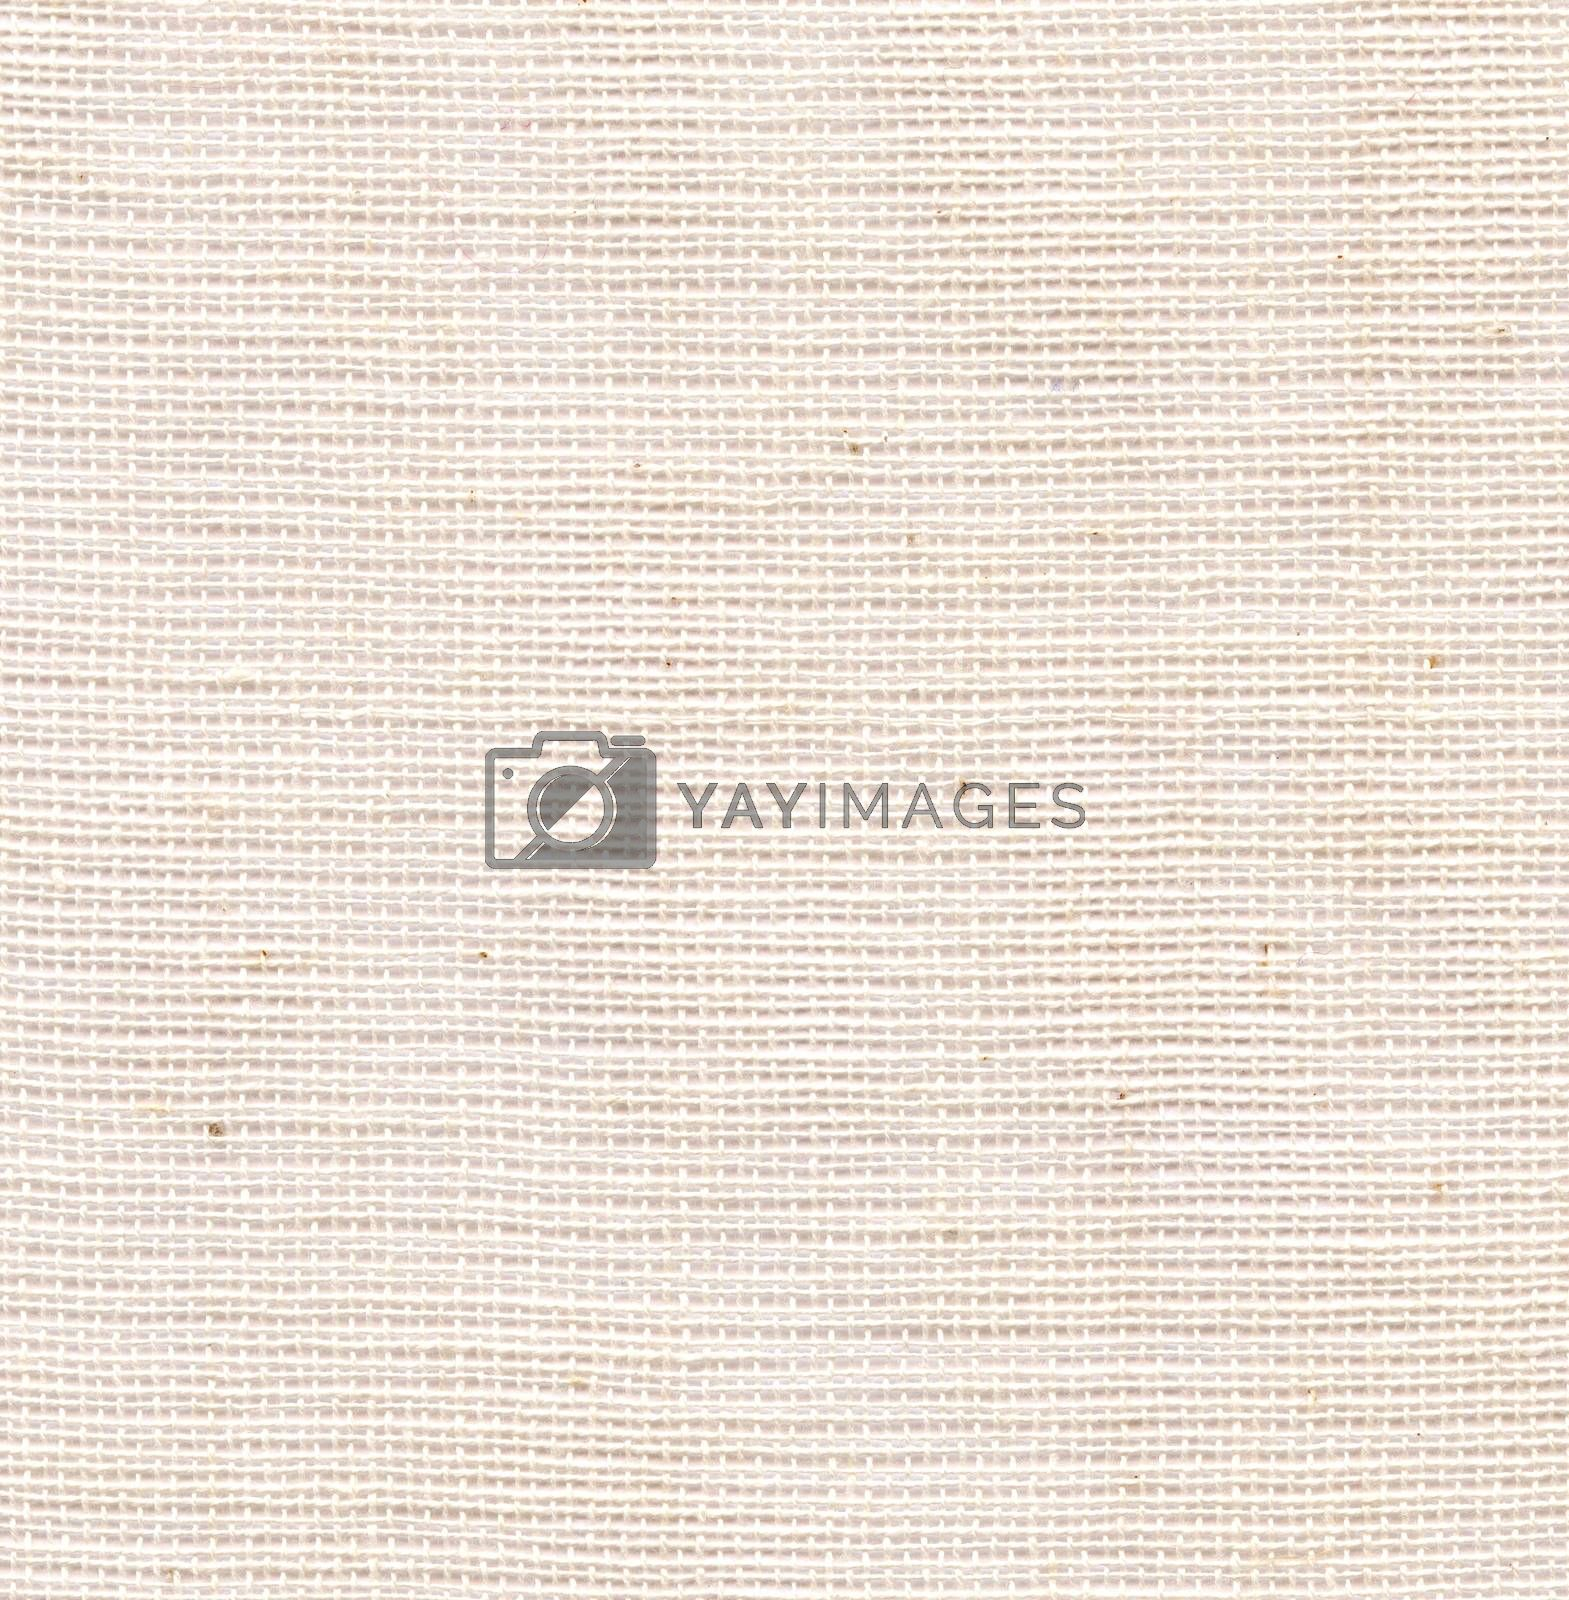 Fabric Texture. Light yellow and white canvas background